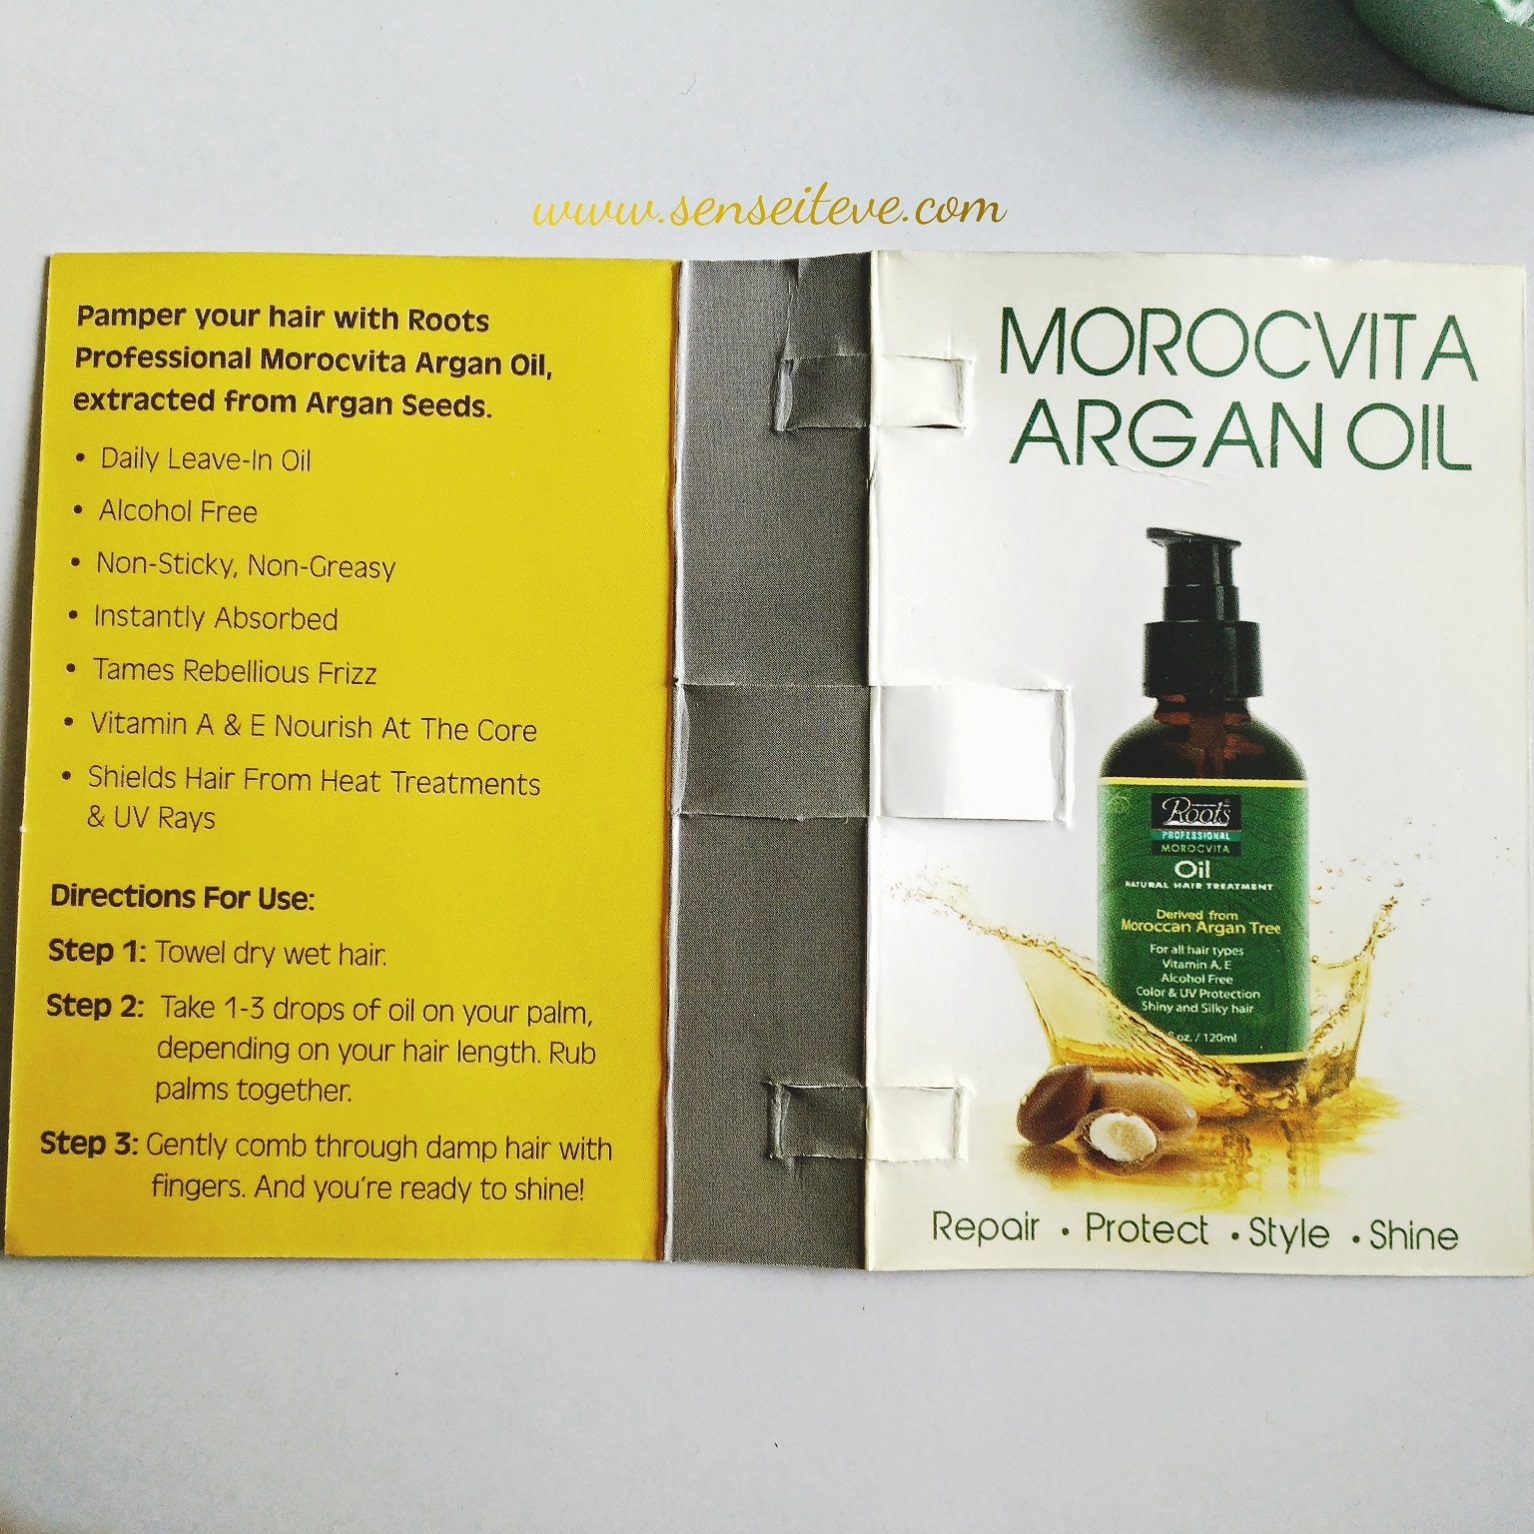 Roots Professional Morocvita Argan Oil